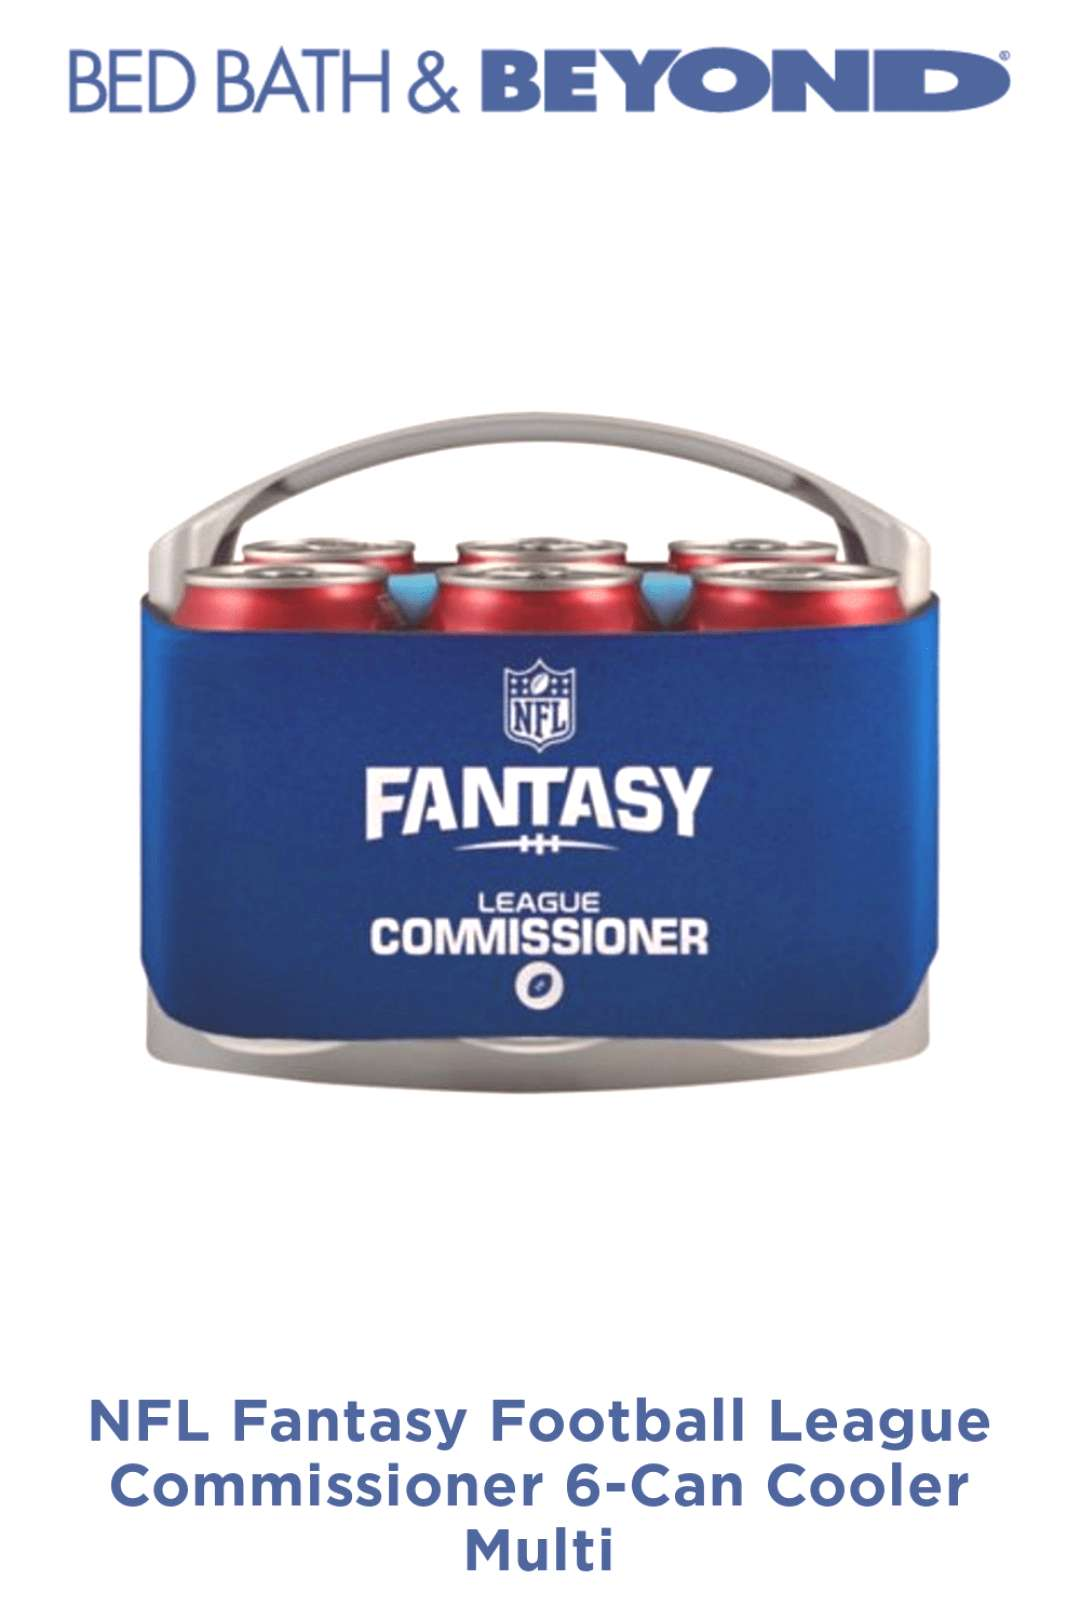 NFL Fantasy Football League Commissioner 6-Can Cooler Multi